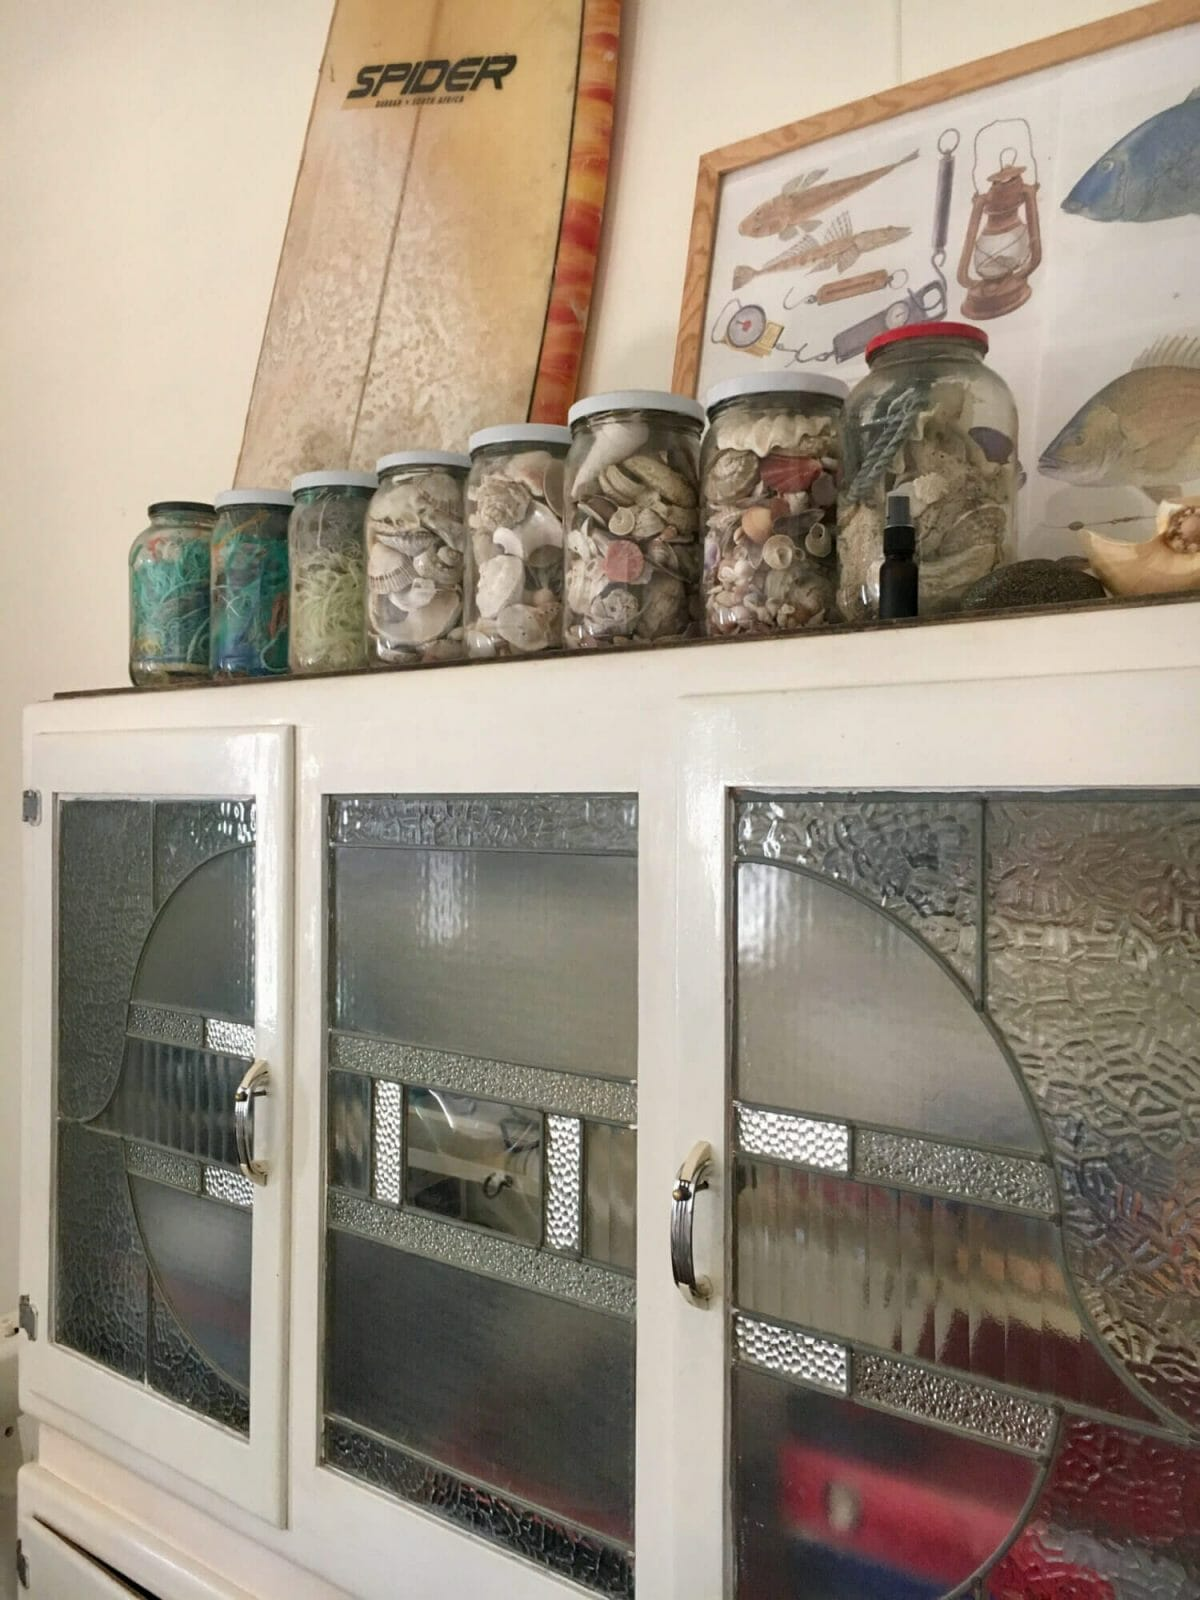 Weekender - Accommodation in Bremer Bay - 21 Barbara Street. House is full of beach decor and art